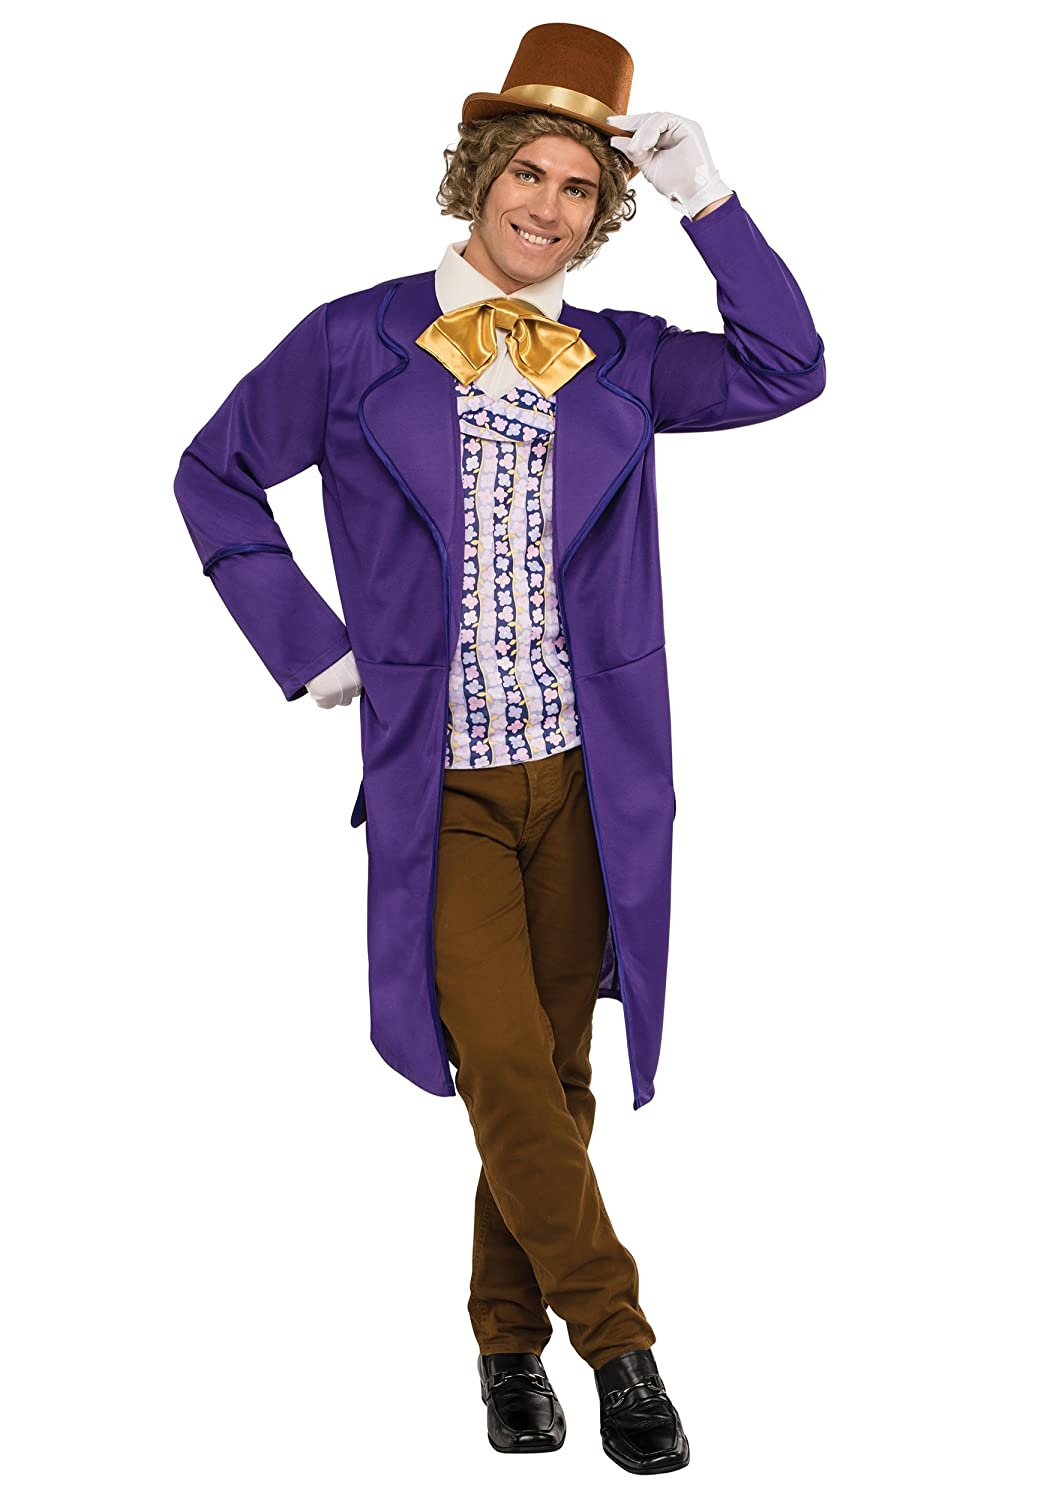 Elegant Rubieu0027s Menu0027s Willy Wonka And The Chocolate Factory Deluxe Willy Wonka  Costume